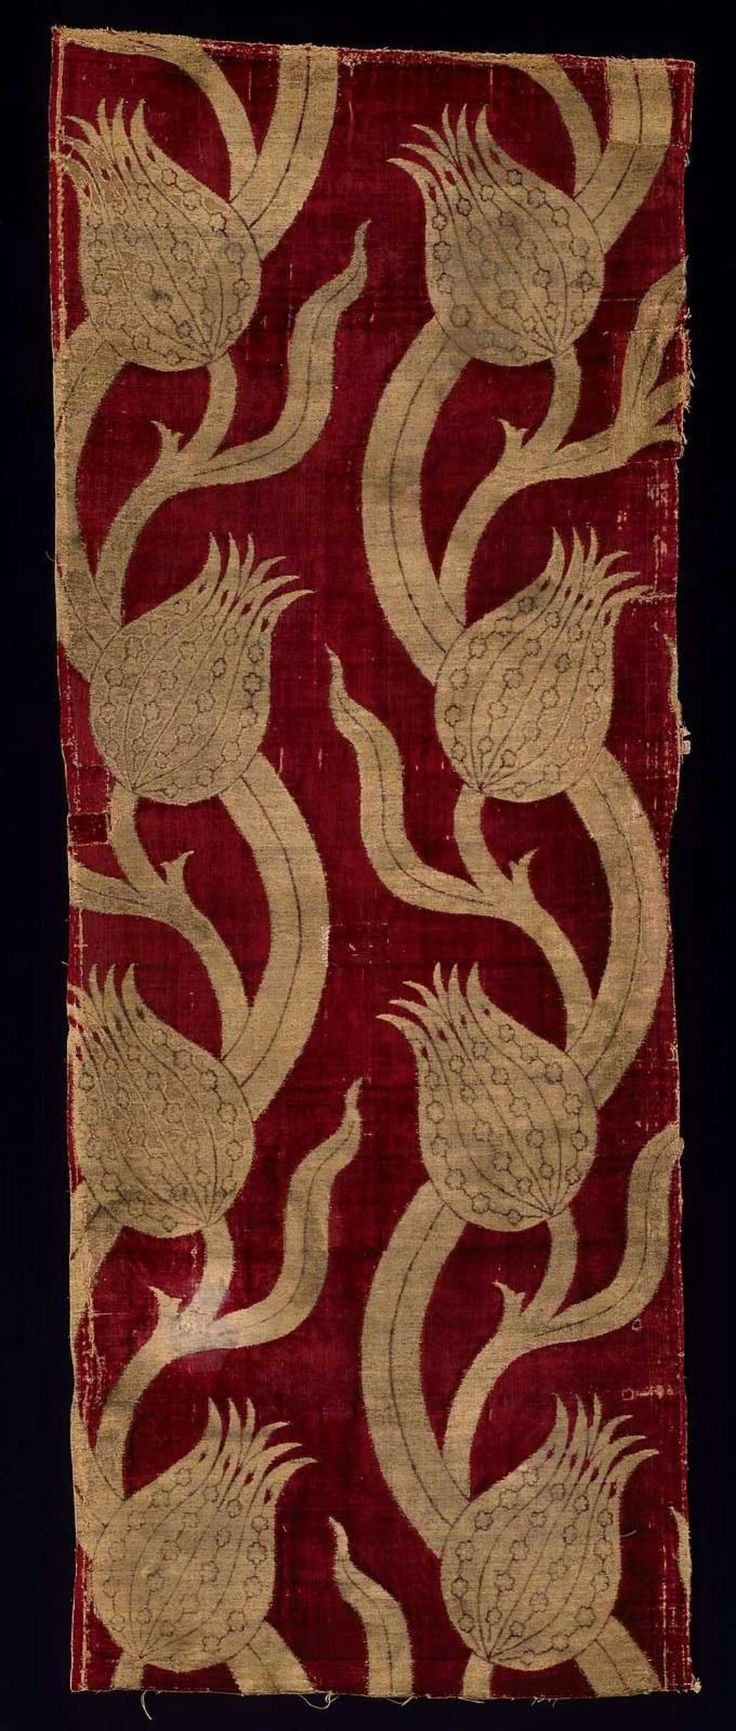 Textile Ottoman, late 16th century Turkey